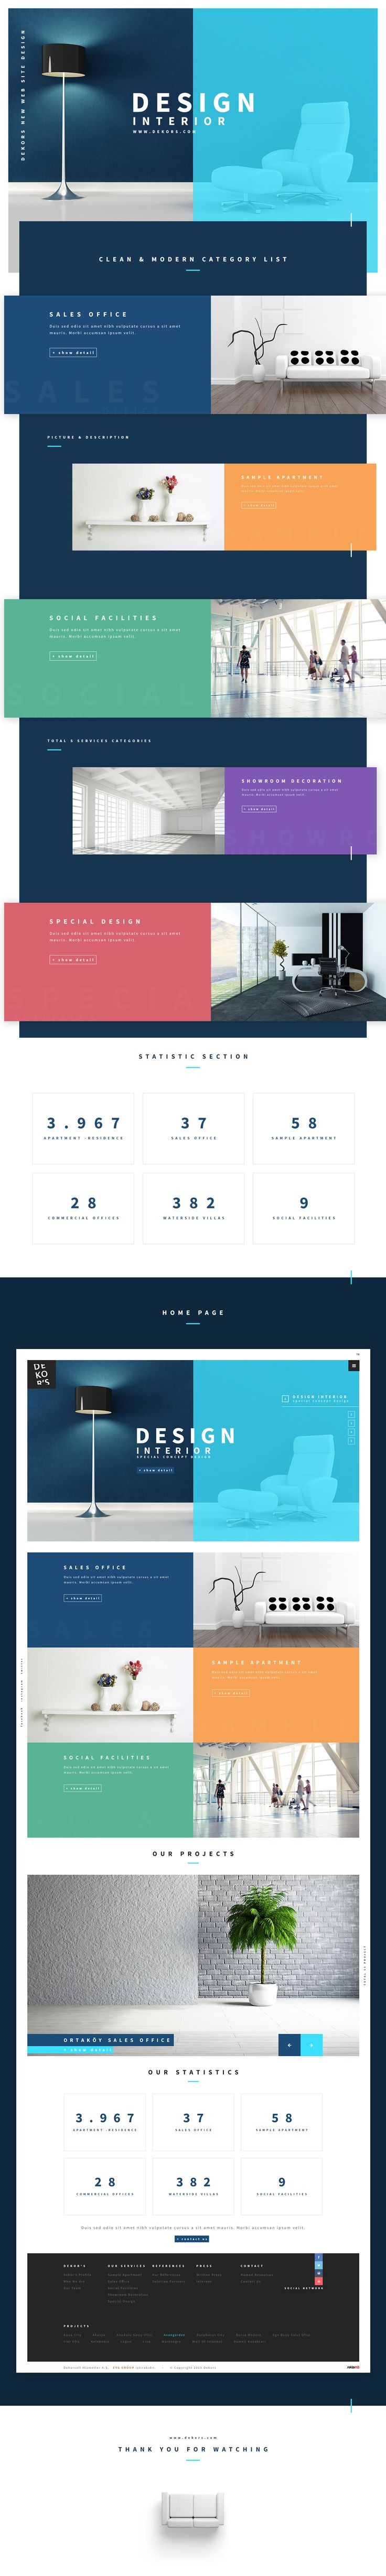 Dekor's New Web Site Design on Behance